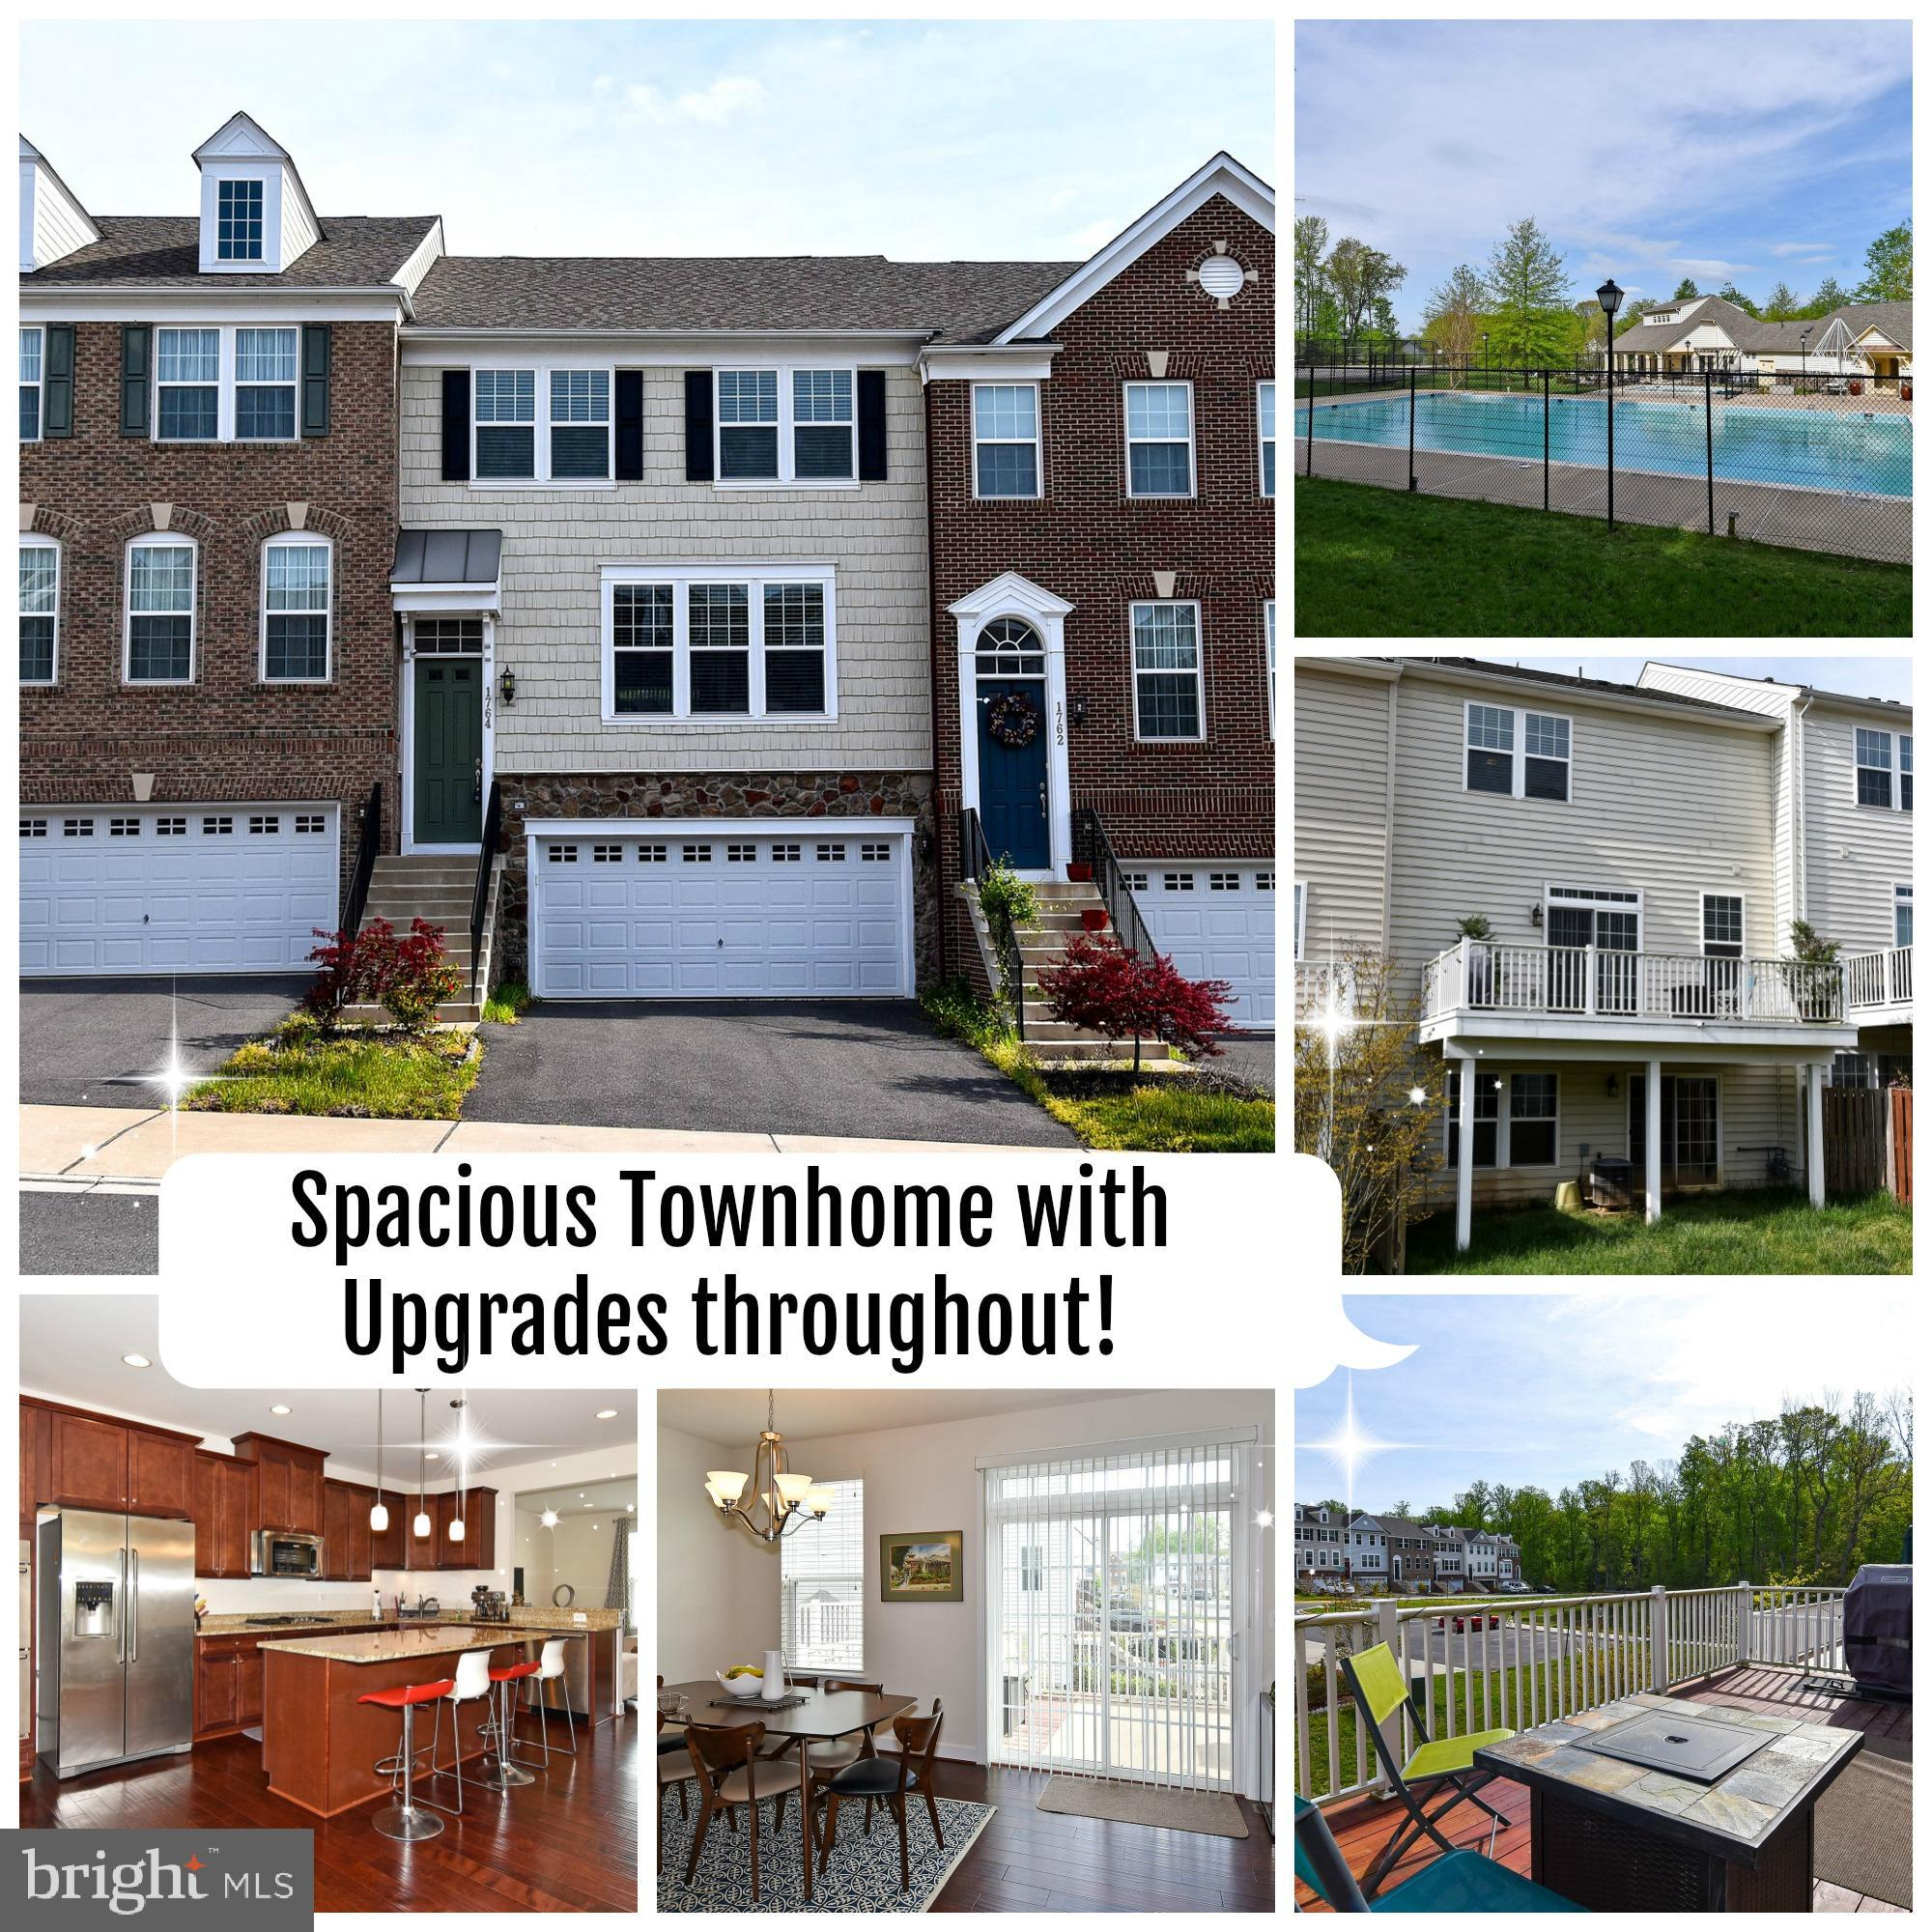 Beautiful, light and bright, almost new, 3 Level Townhouse with 2 car garage, located in the amenity filled Powells Landing Community. The home features, 3 Bedrooms, 2 Full Bathrooms, 2 Half Bathrooms, Gourmet Kitchen with Large Kitchen Island, Granite Counter Tops, Stainless Steel Appliances, Double Wall Oven, Upgraded Hardwood Floors, Large Walk-out Basement, Deck, Laundry Room on Upper Level. If you are looking to move to the Powells Landing neighborhood this is your chance. Don't miss out.